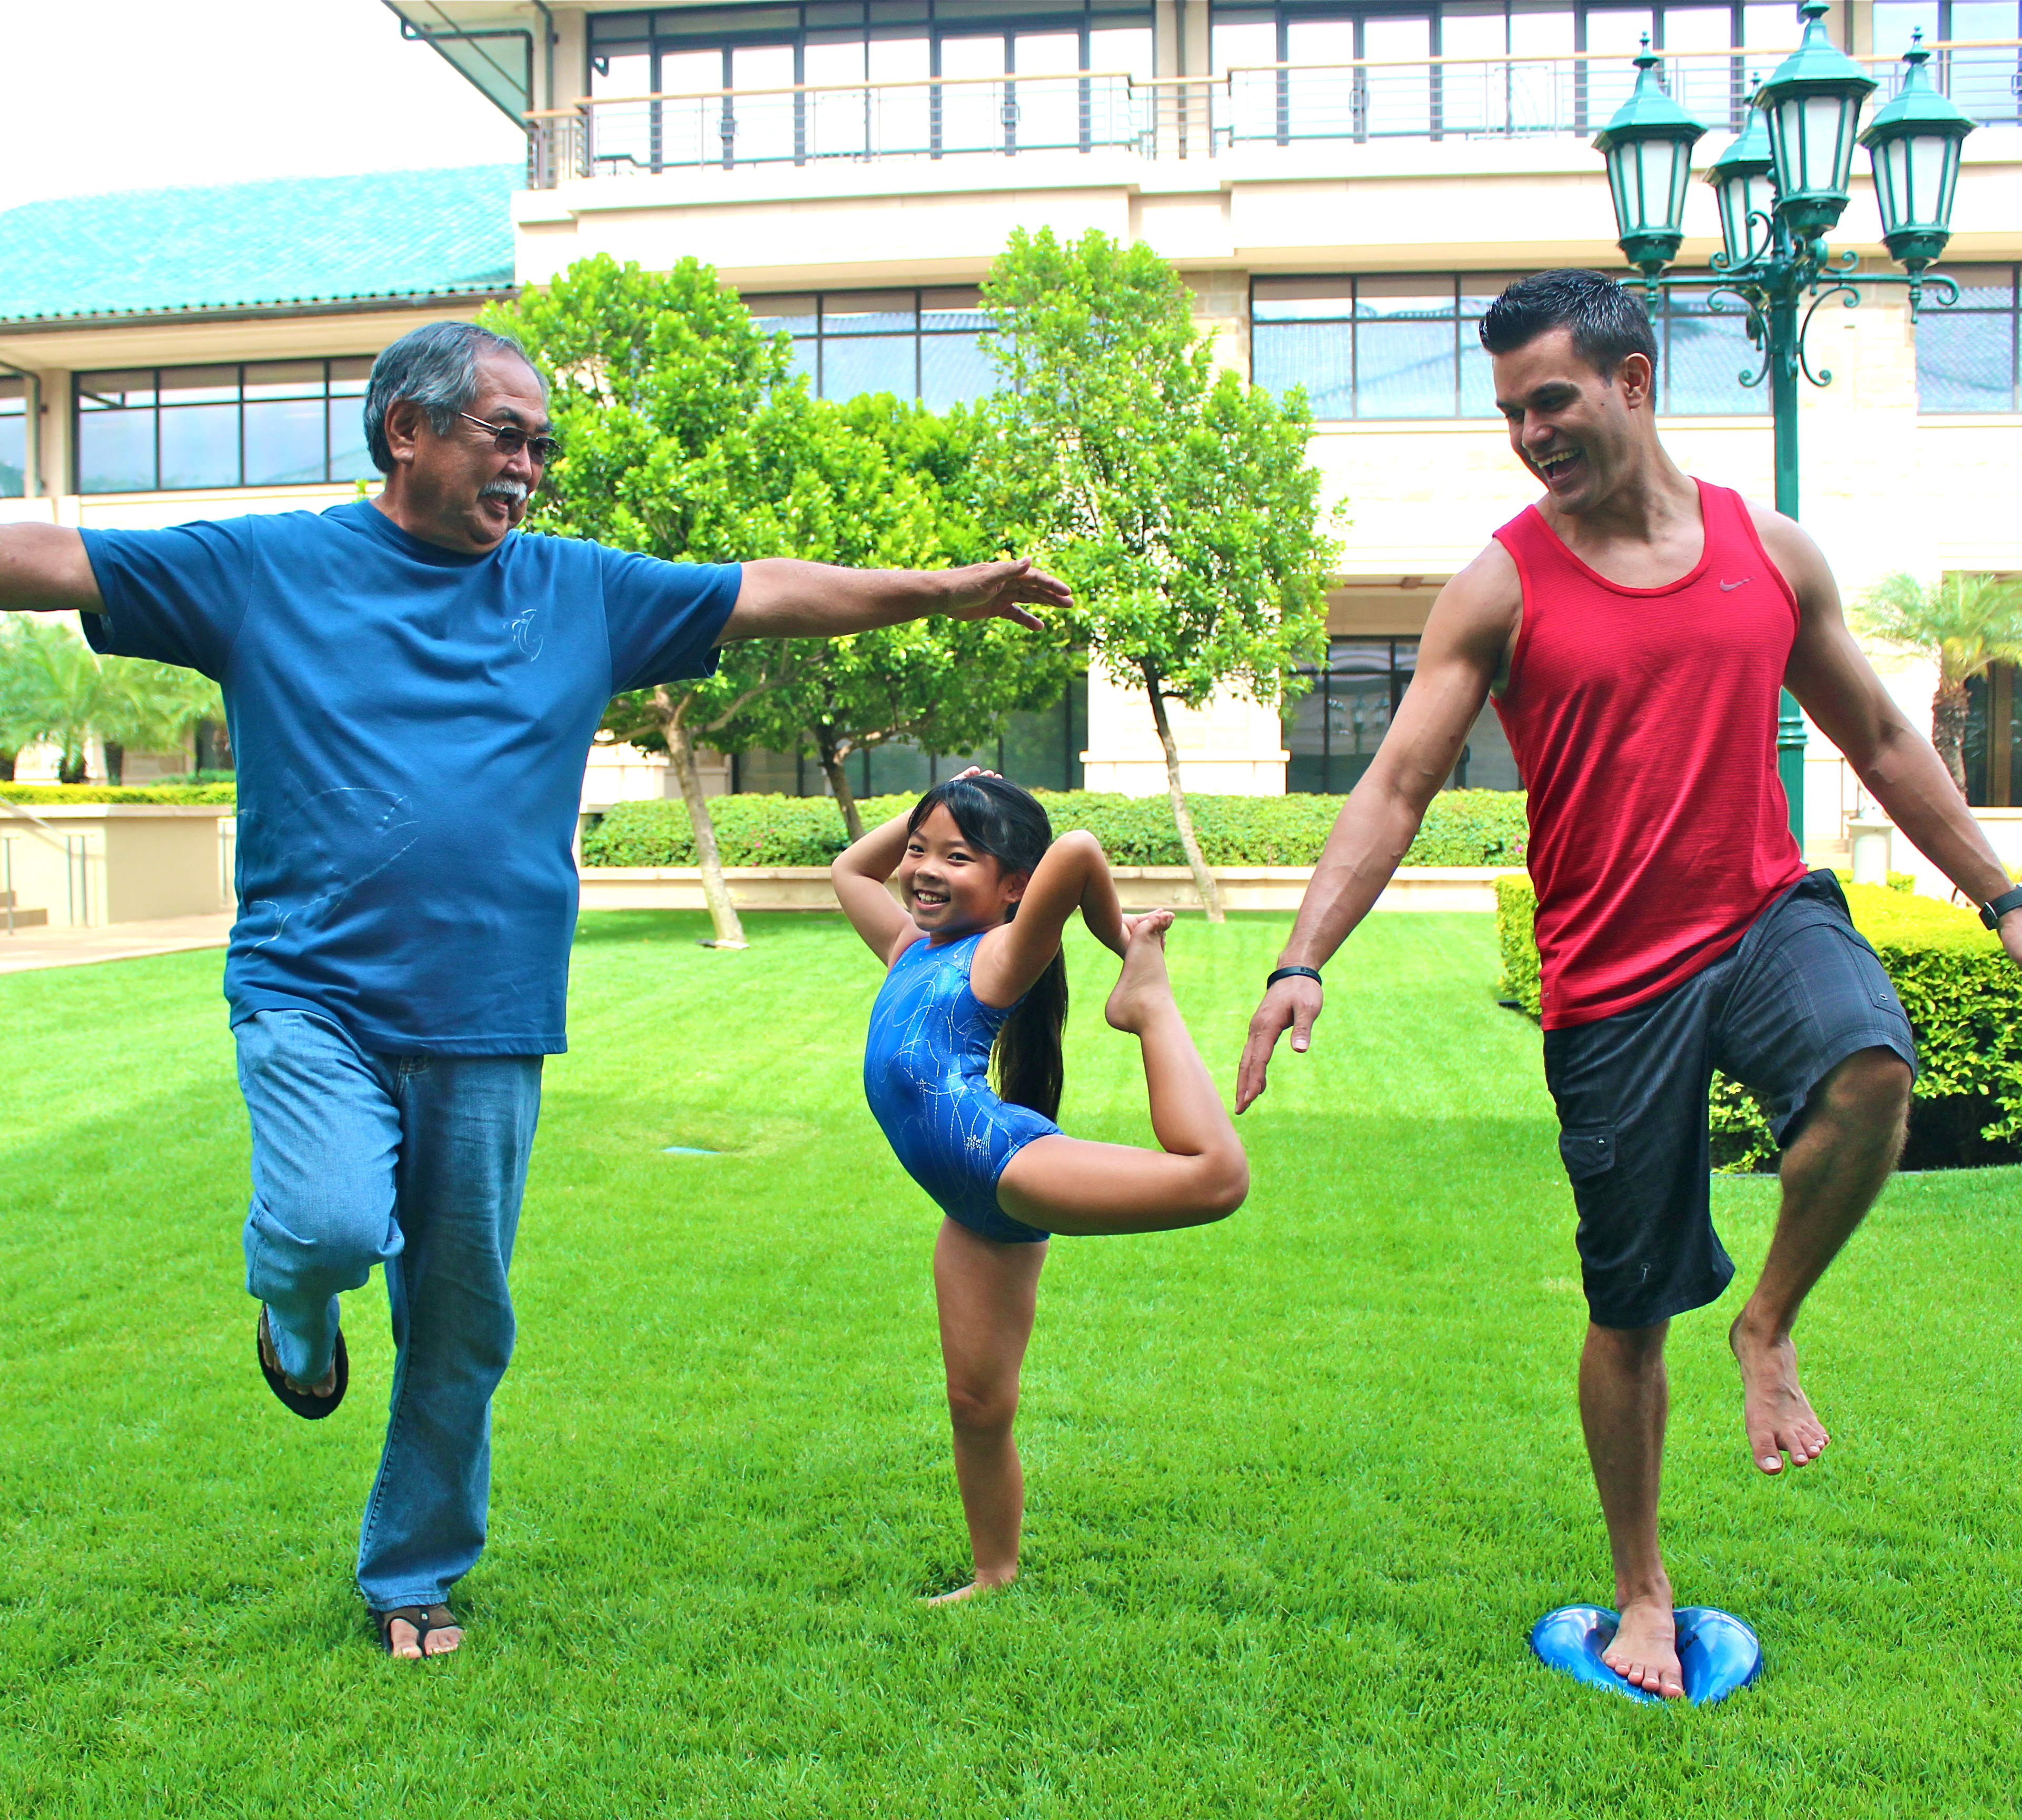 A little girl and two men balancing themselves doing exercise